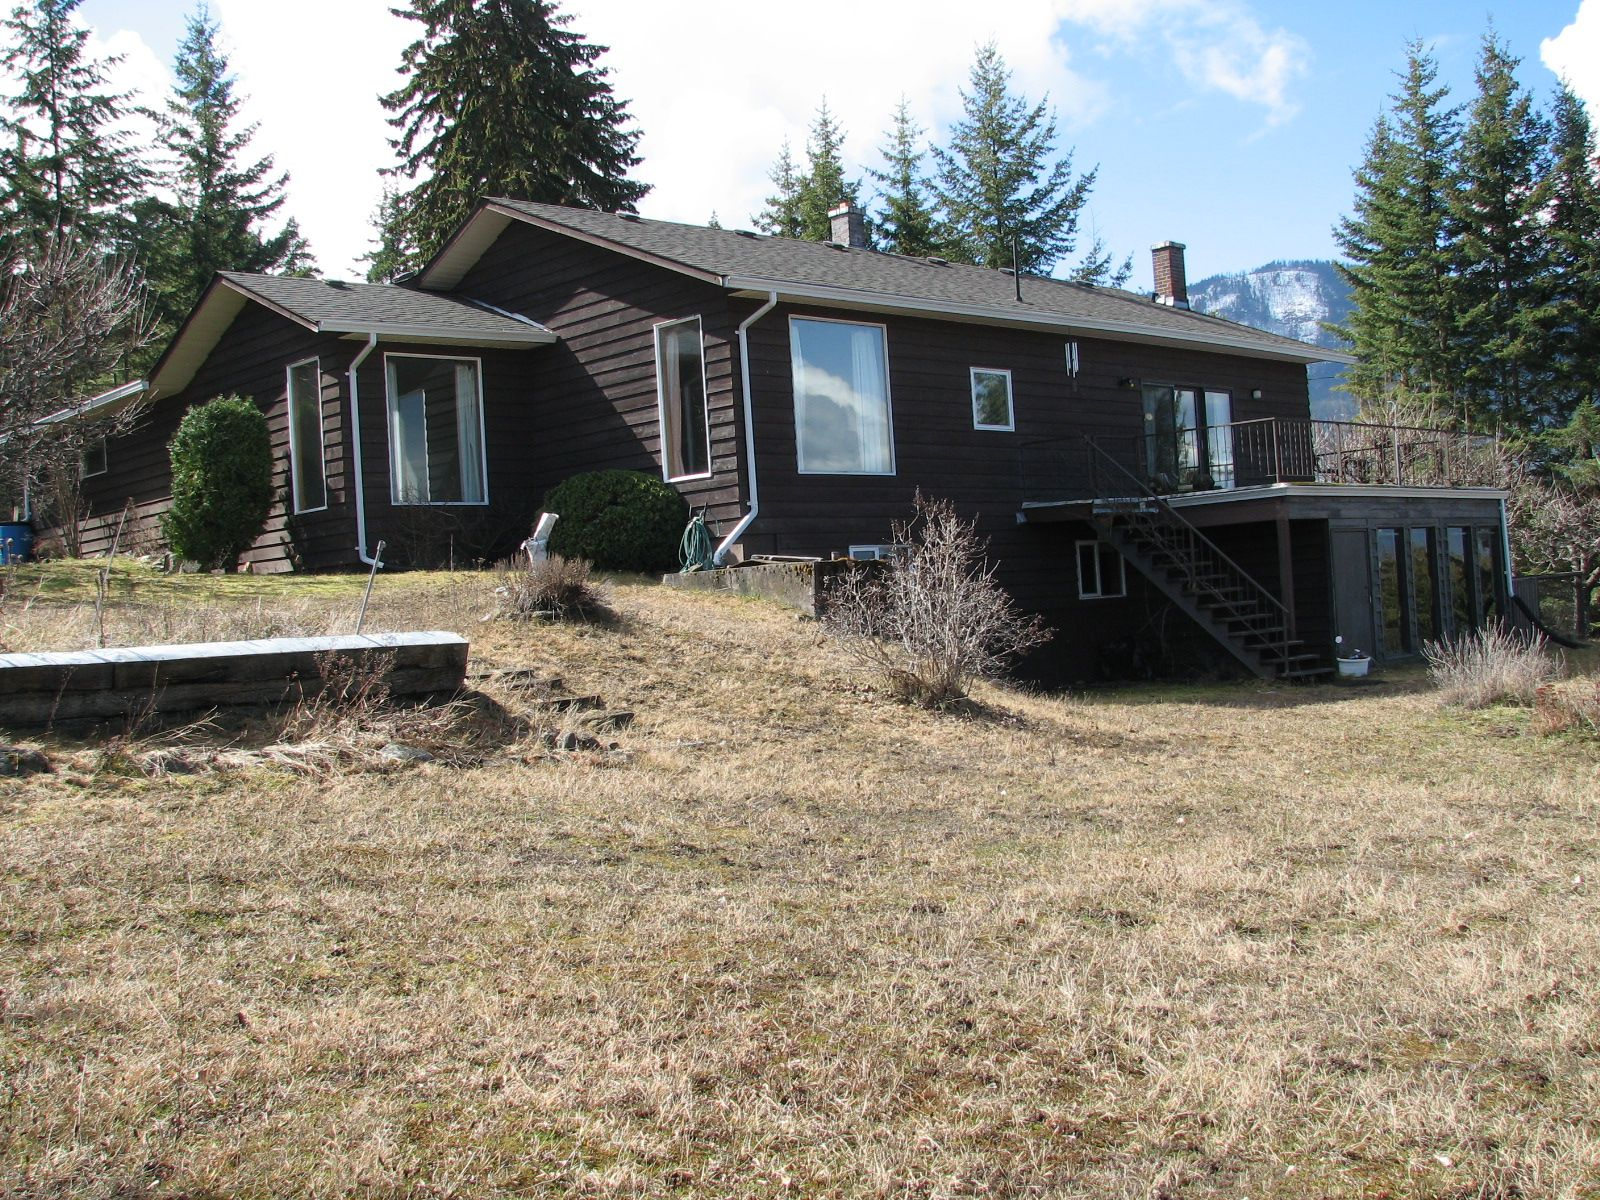 Main Photo: 1563 Kyte Rd in Sorretno: Sorrento House for sale (Shuswap)  : MLS®# 10175854